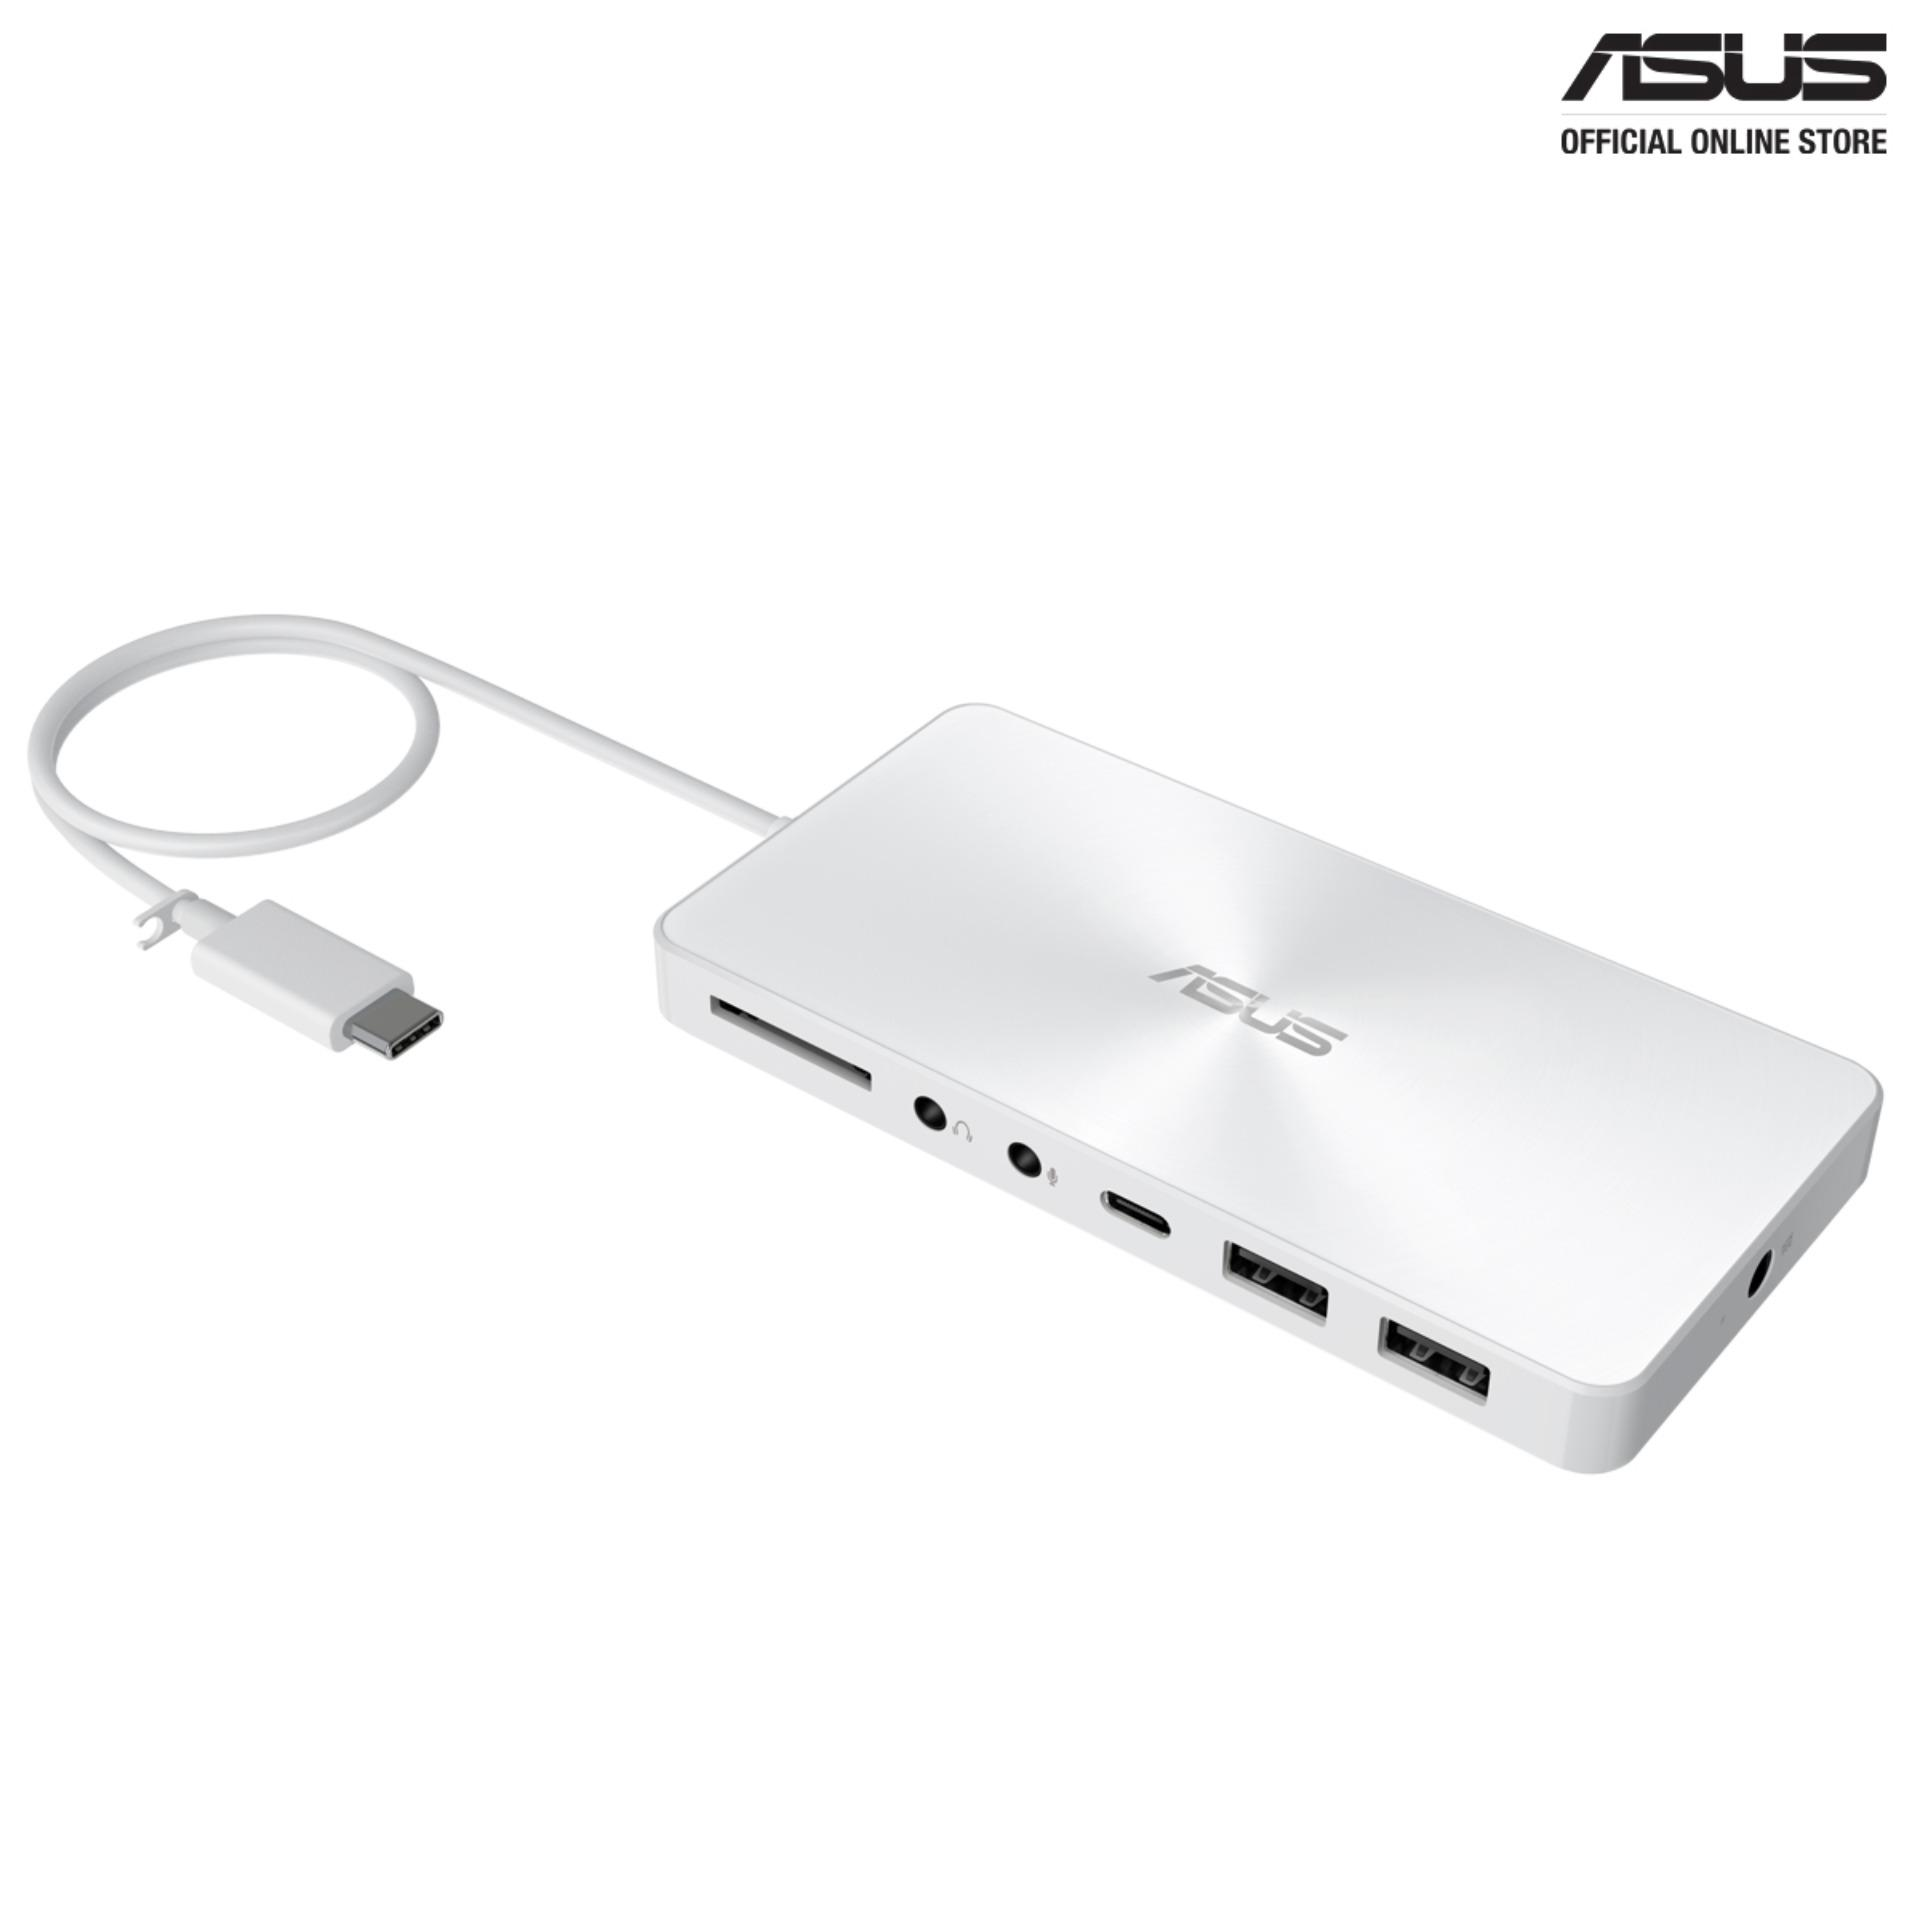 Latest Asus Computer Accessories Products Enjoy Huge Discounts Bluray Writer Internal Bw 16d1ht Universal Dock